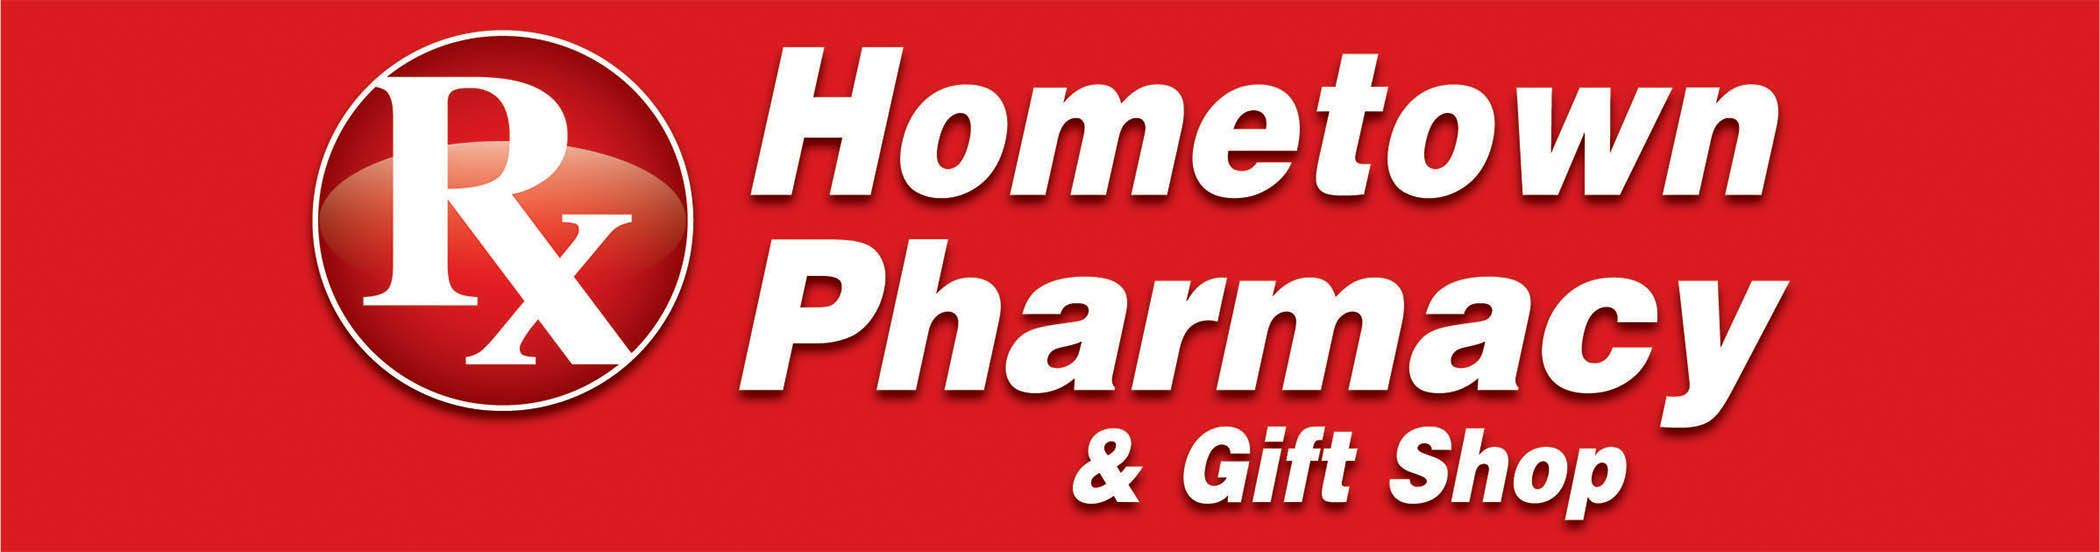 HWY 20 Hometown Pharmacy & Gift Shop